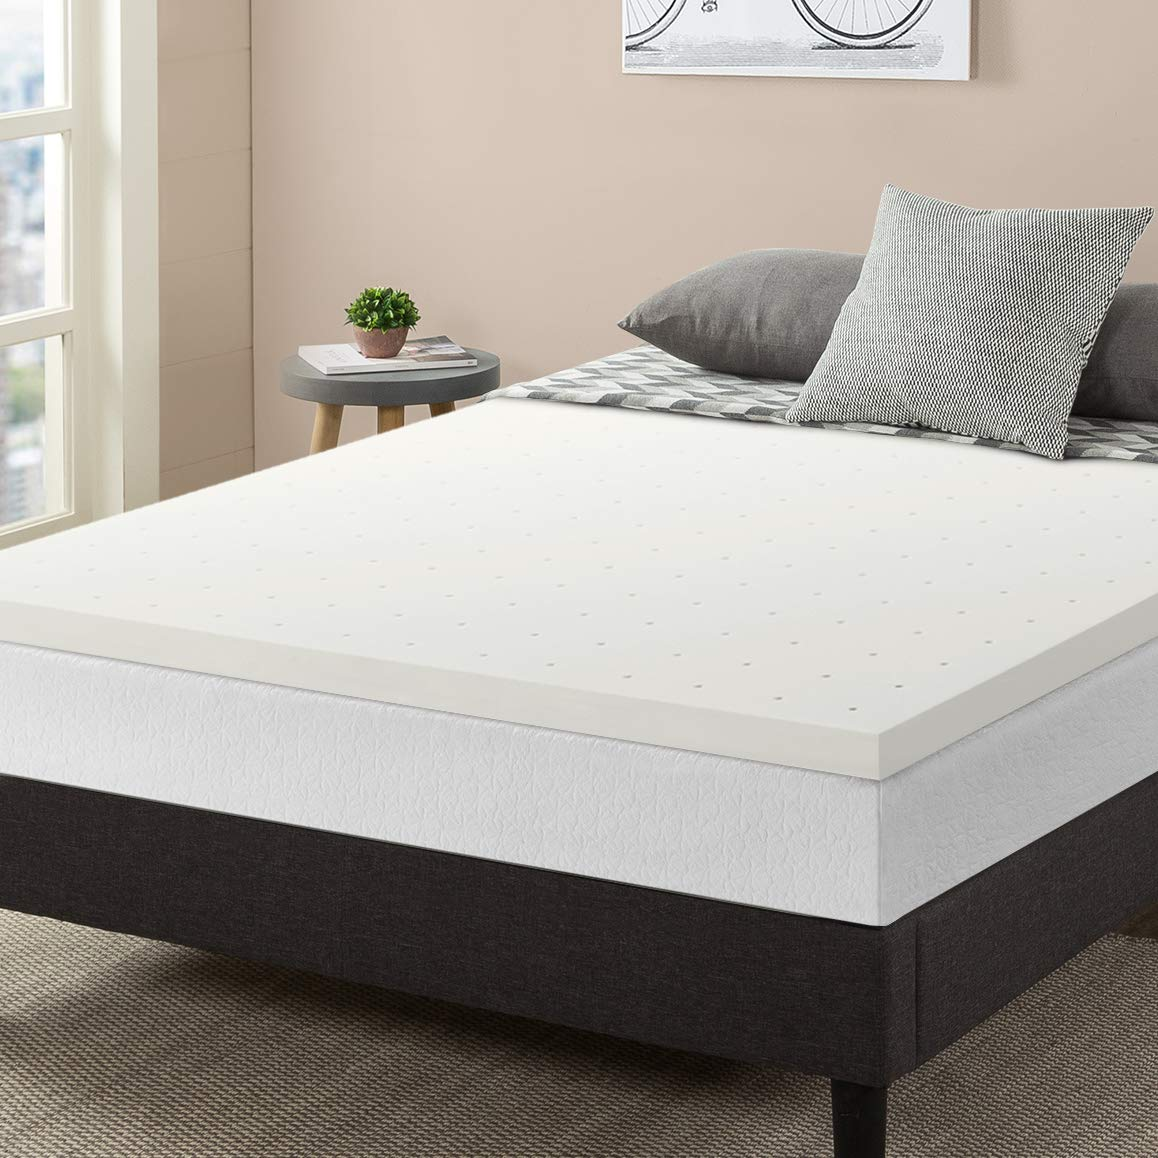 Best Price Mattress XL Mattress 2 Inch Memory Foam Bed Topper, Twin Extra Long Size by Best Price Mattress